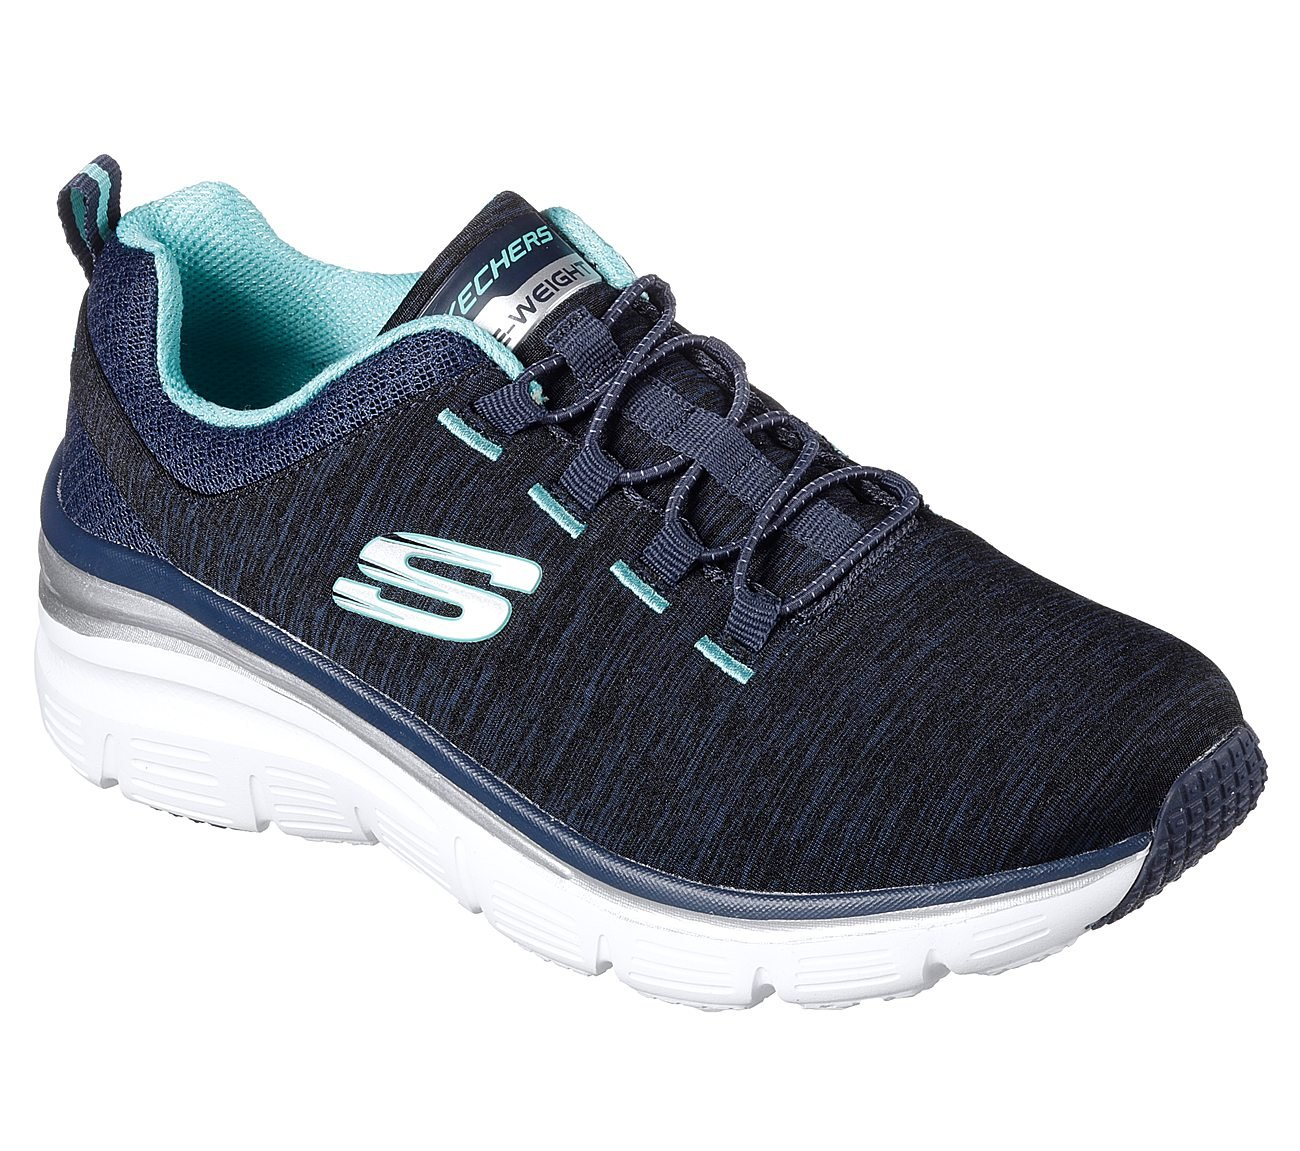 Skechers Fashion Fit up A Level Womens Slip On Sneakers Navy/Turquoise 10 by Skechers